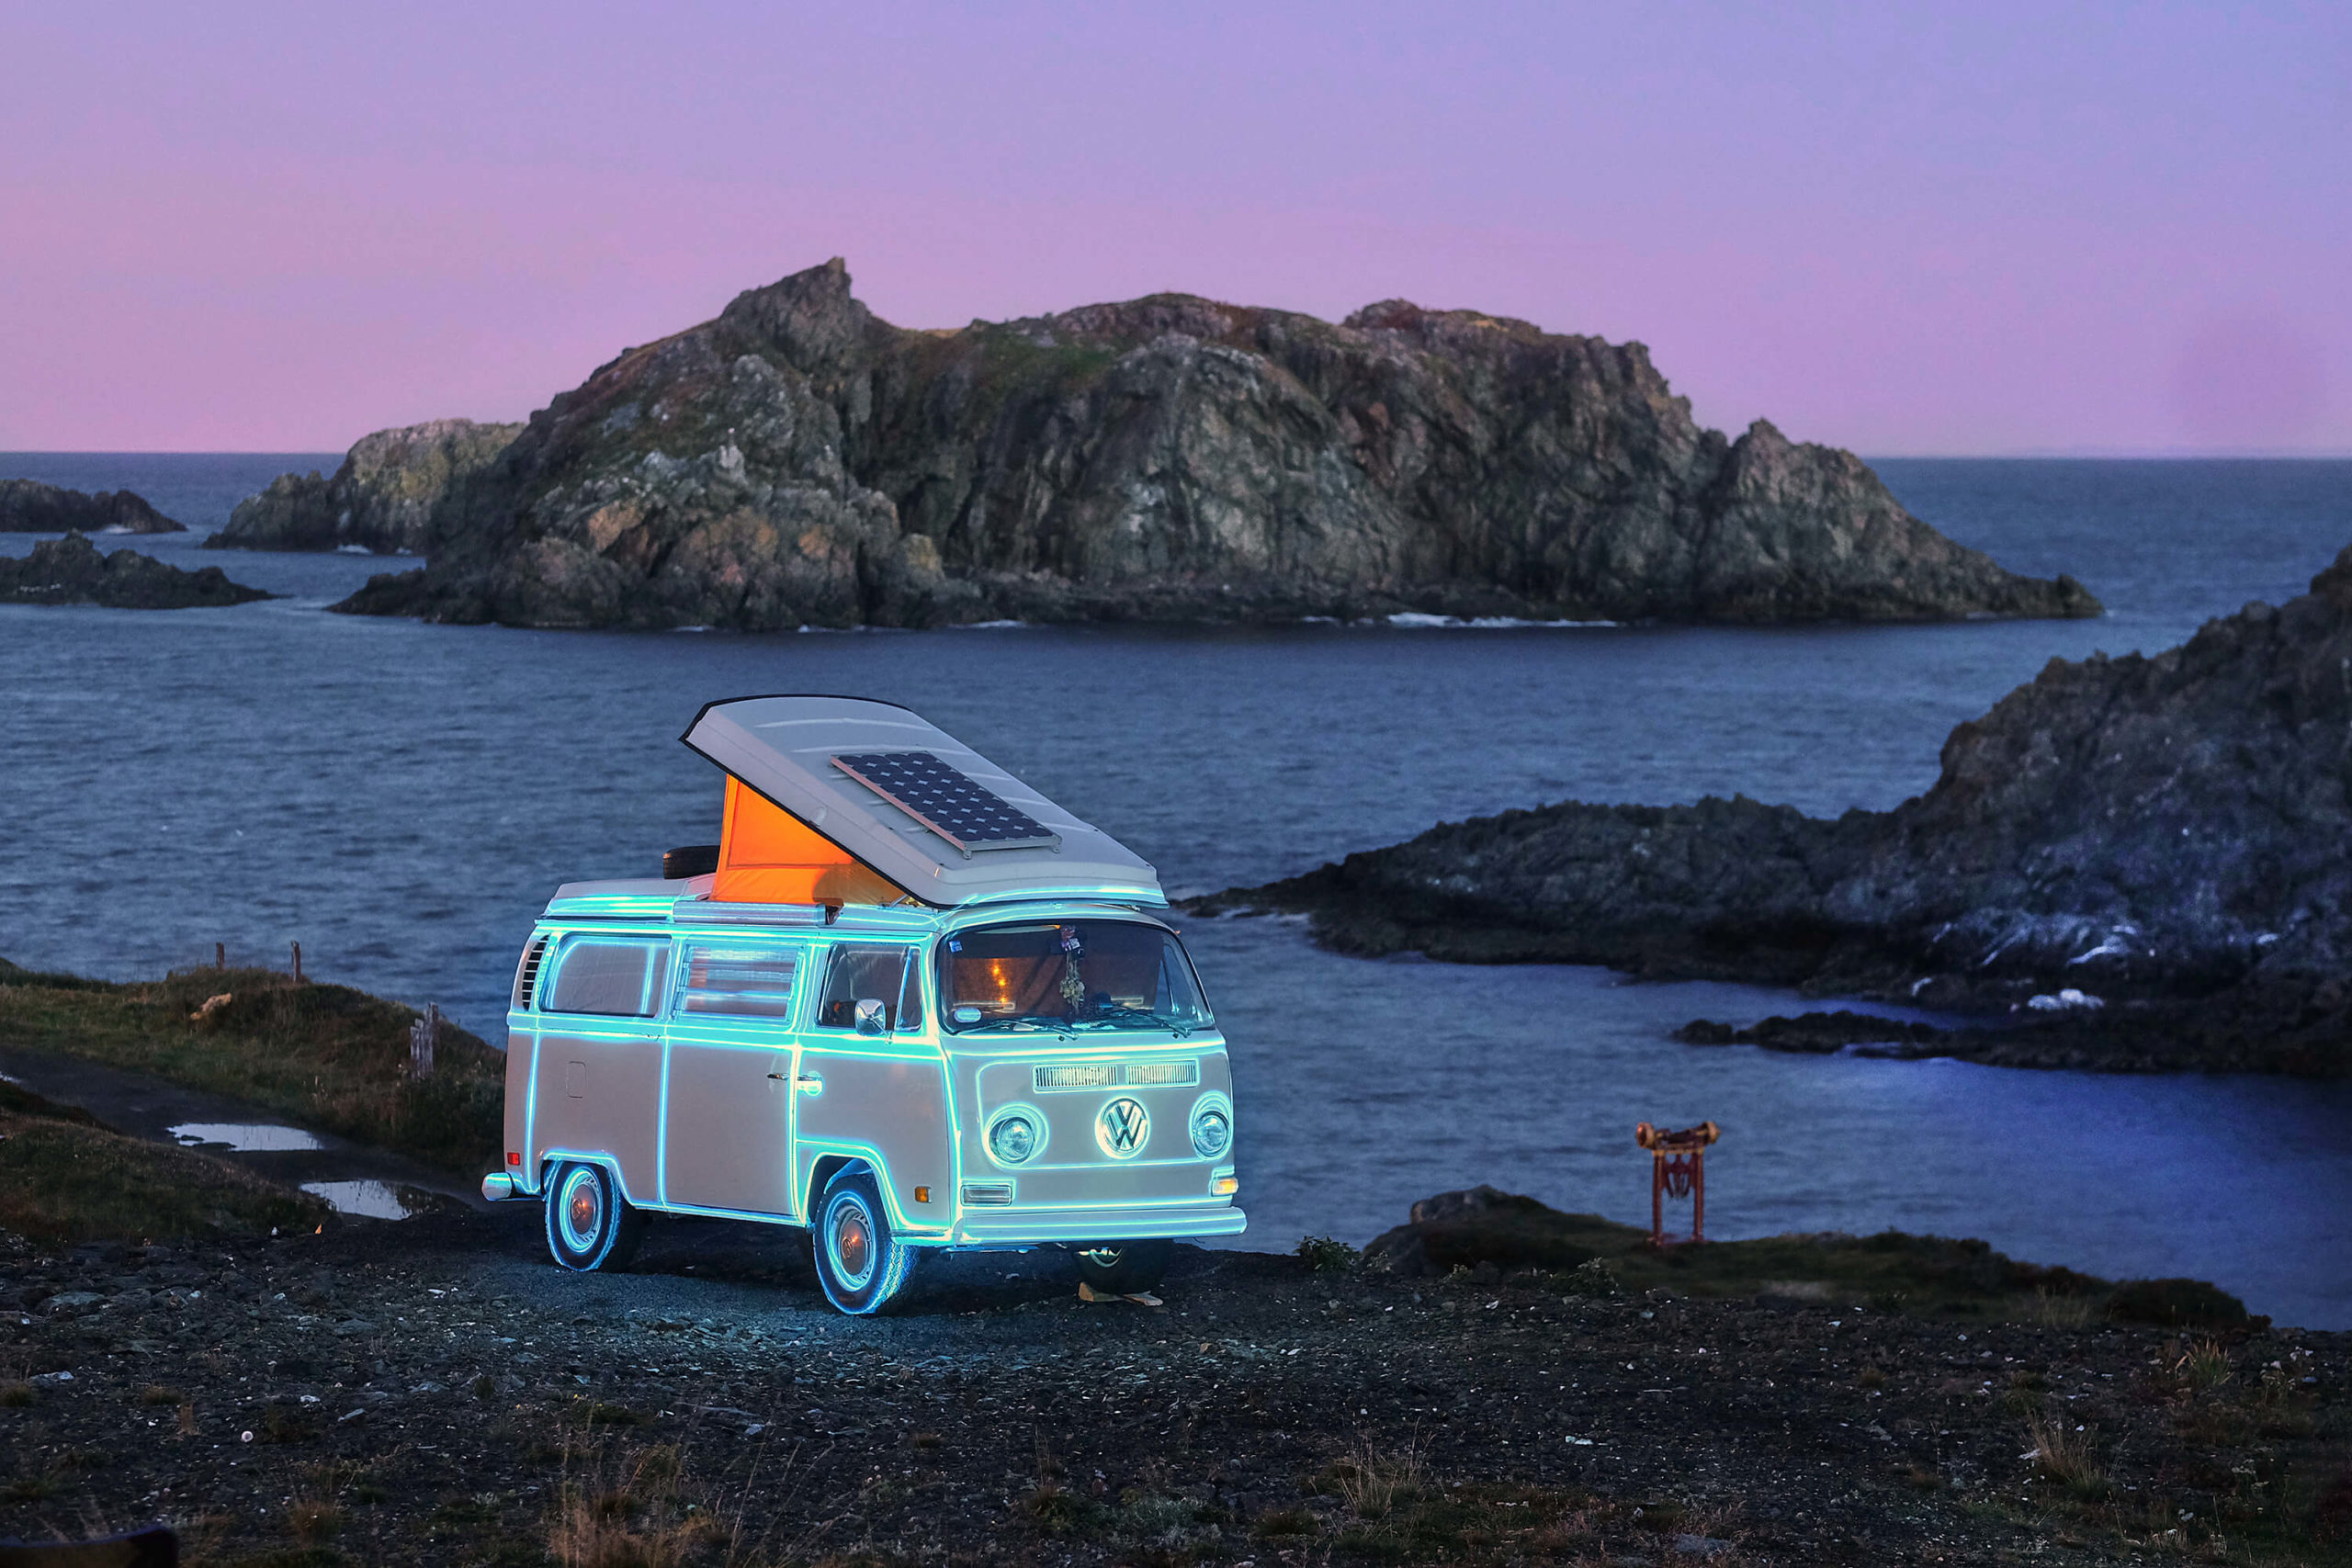 Sean Was Here Projection Mapping Installation on VW Bus Newfoundland